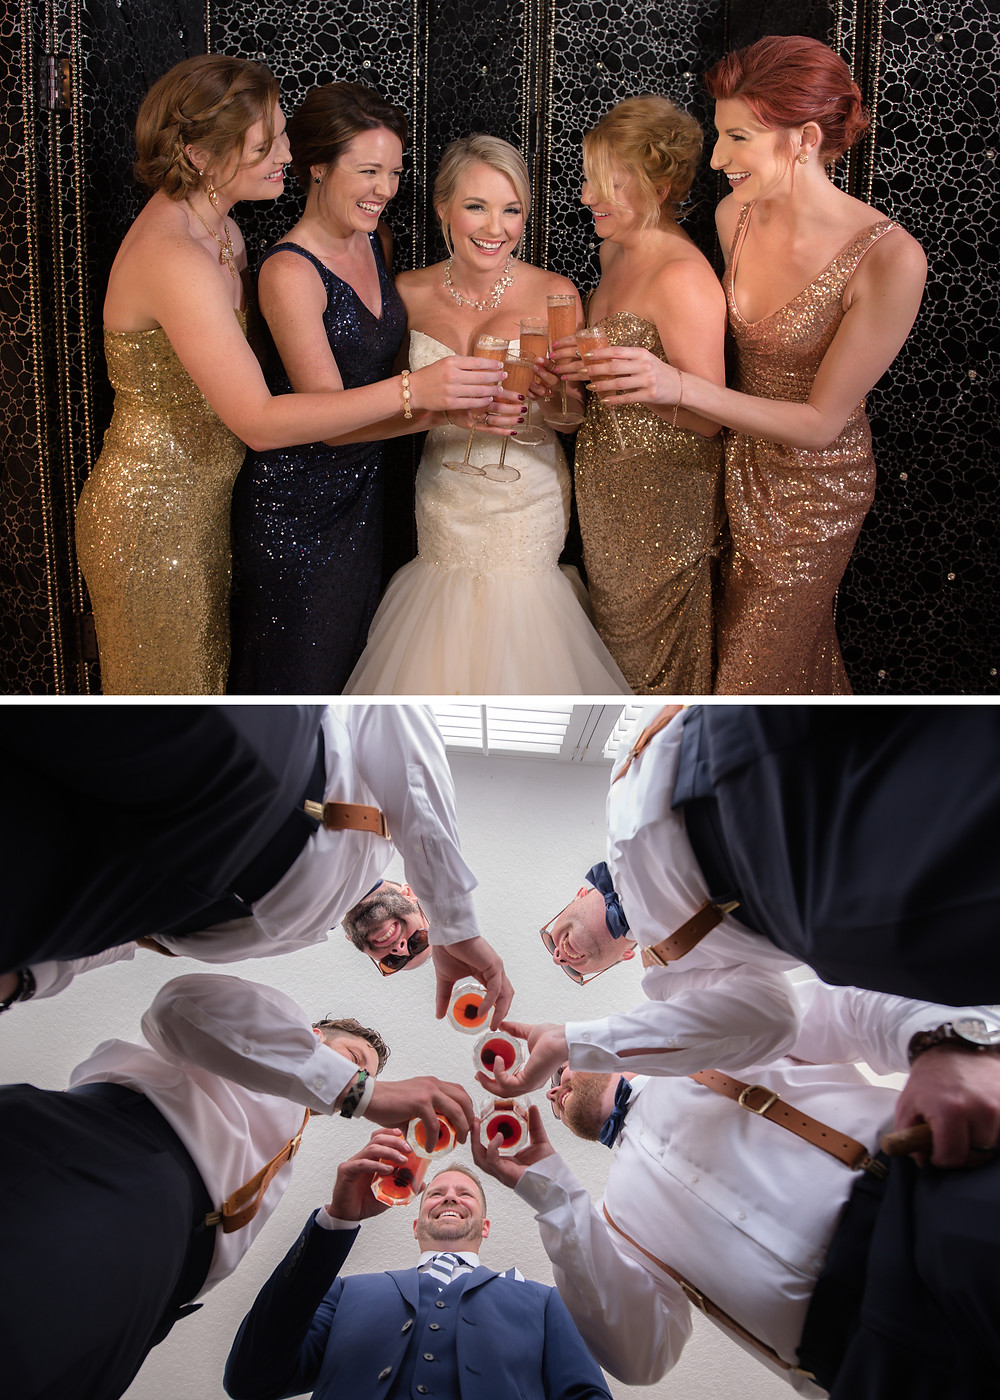 champagne toast with bridesmaids and groomsmen toast with old fashioned